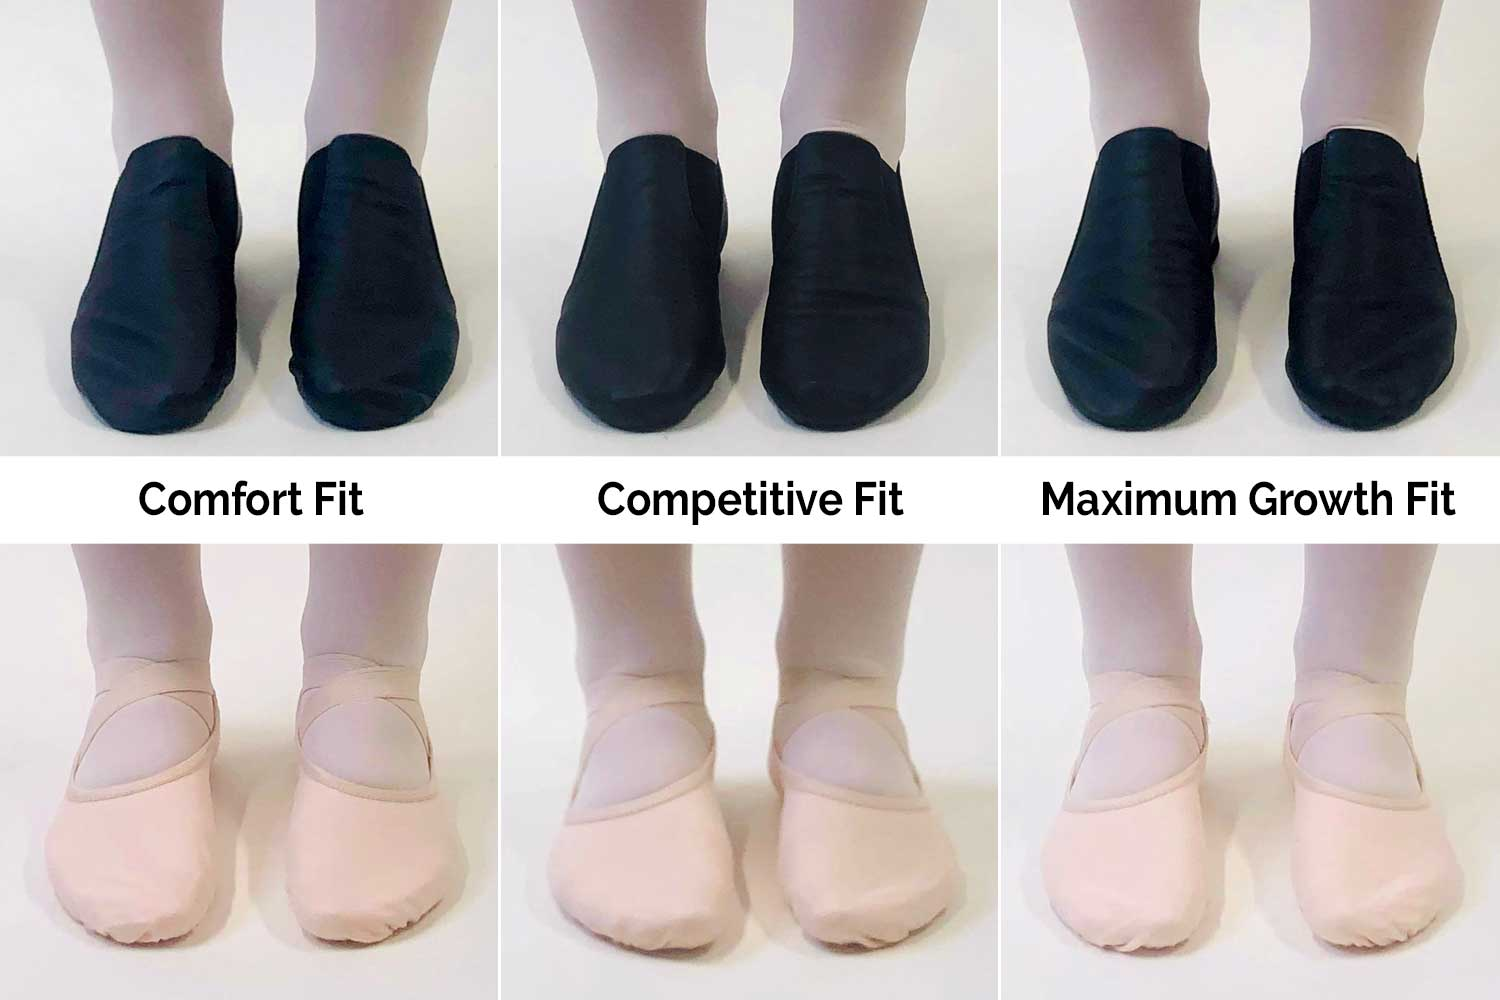 Photos of jazz and ballet shoes in Comfort Fit, Competitive Fit and Maximum Growth Fit